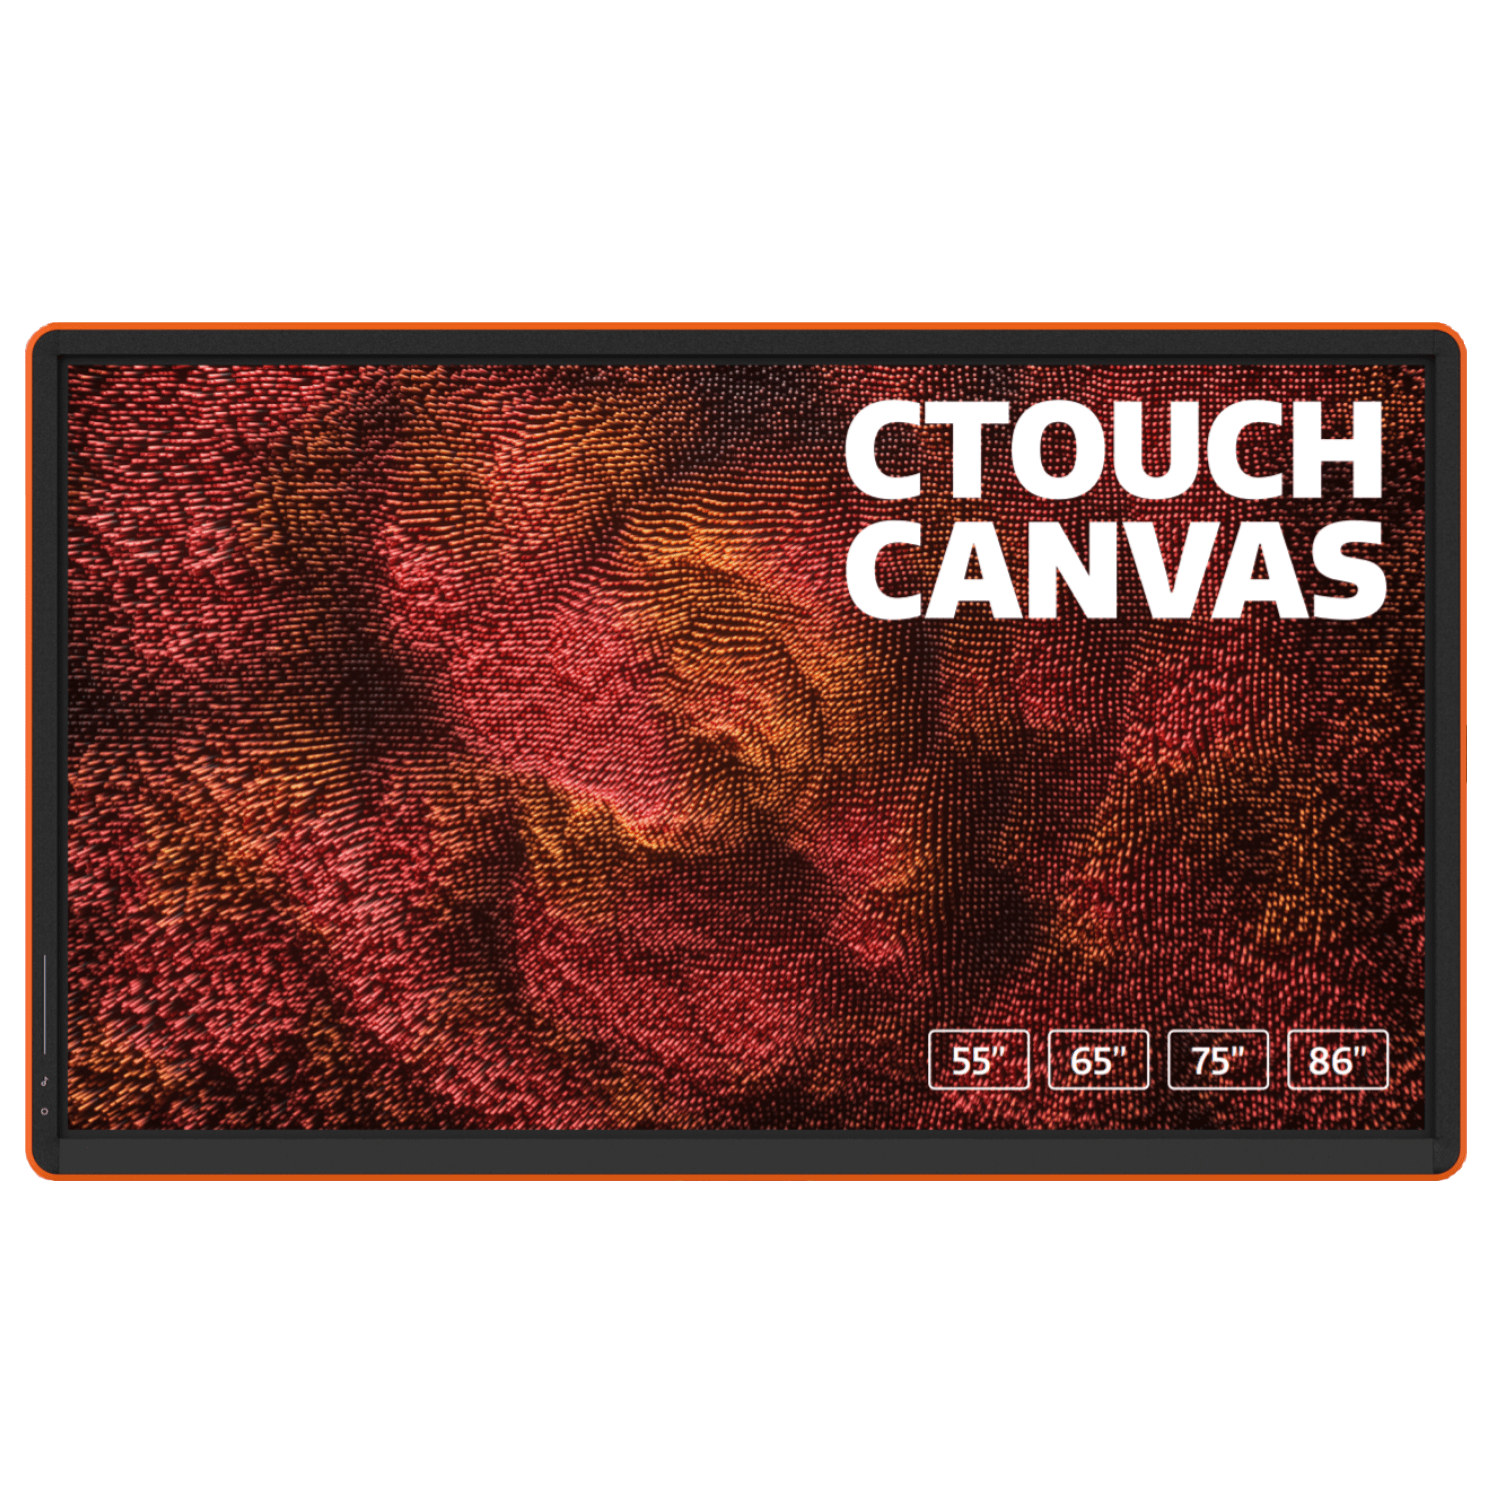 Ctouch Canvas